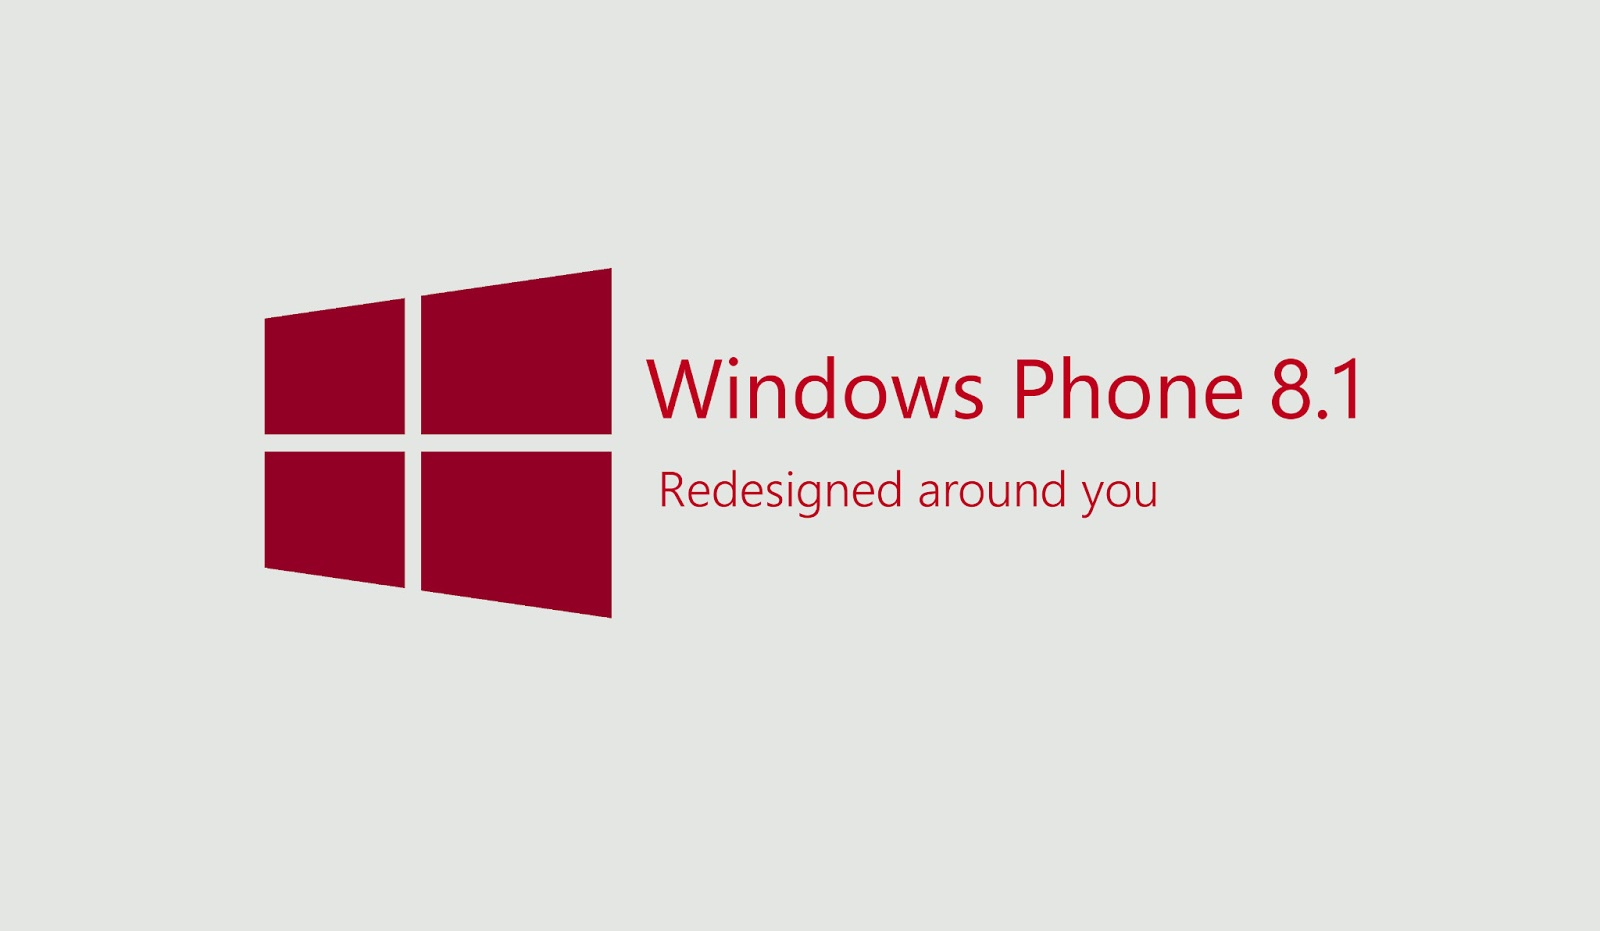 uscita di Windows Phone 8.1